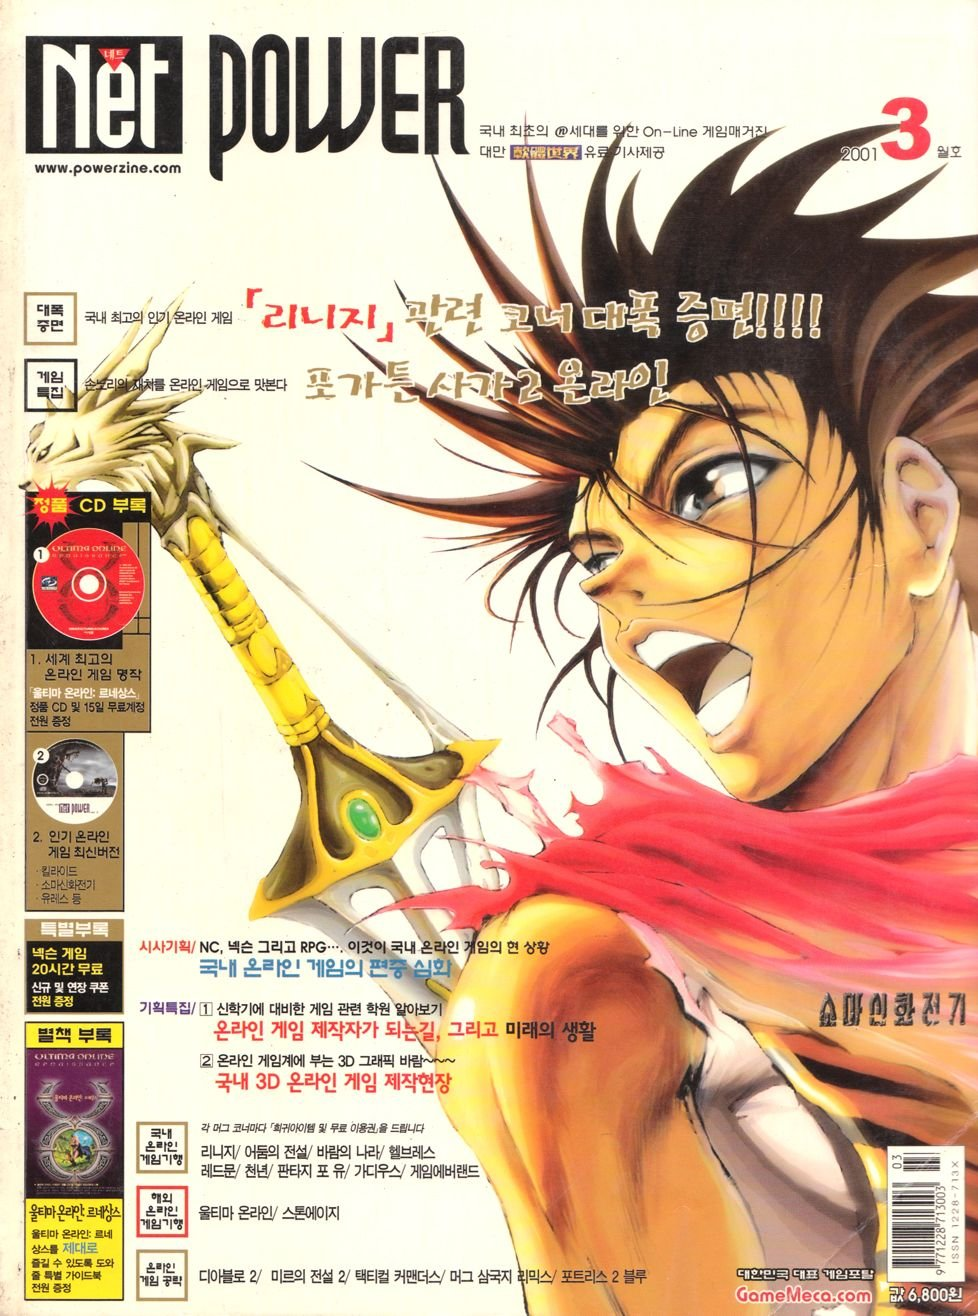 Net Power Issue 18 (March 2001)